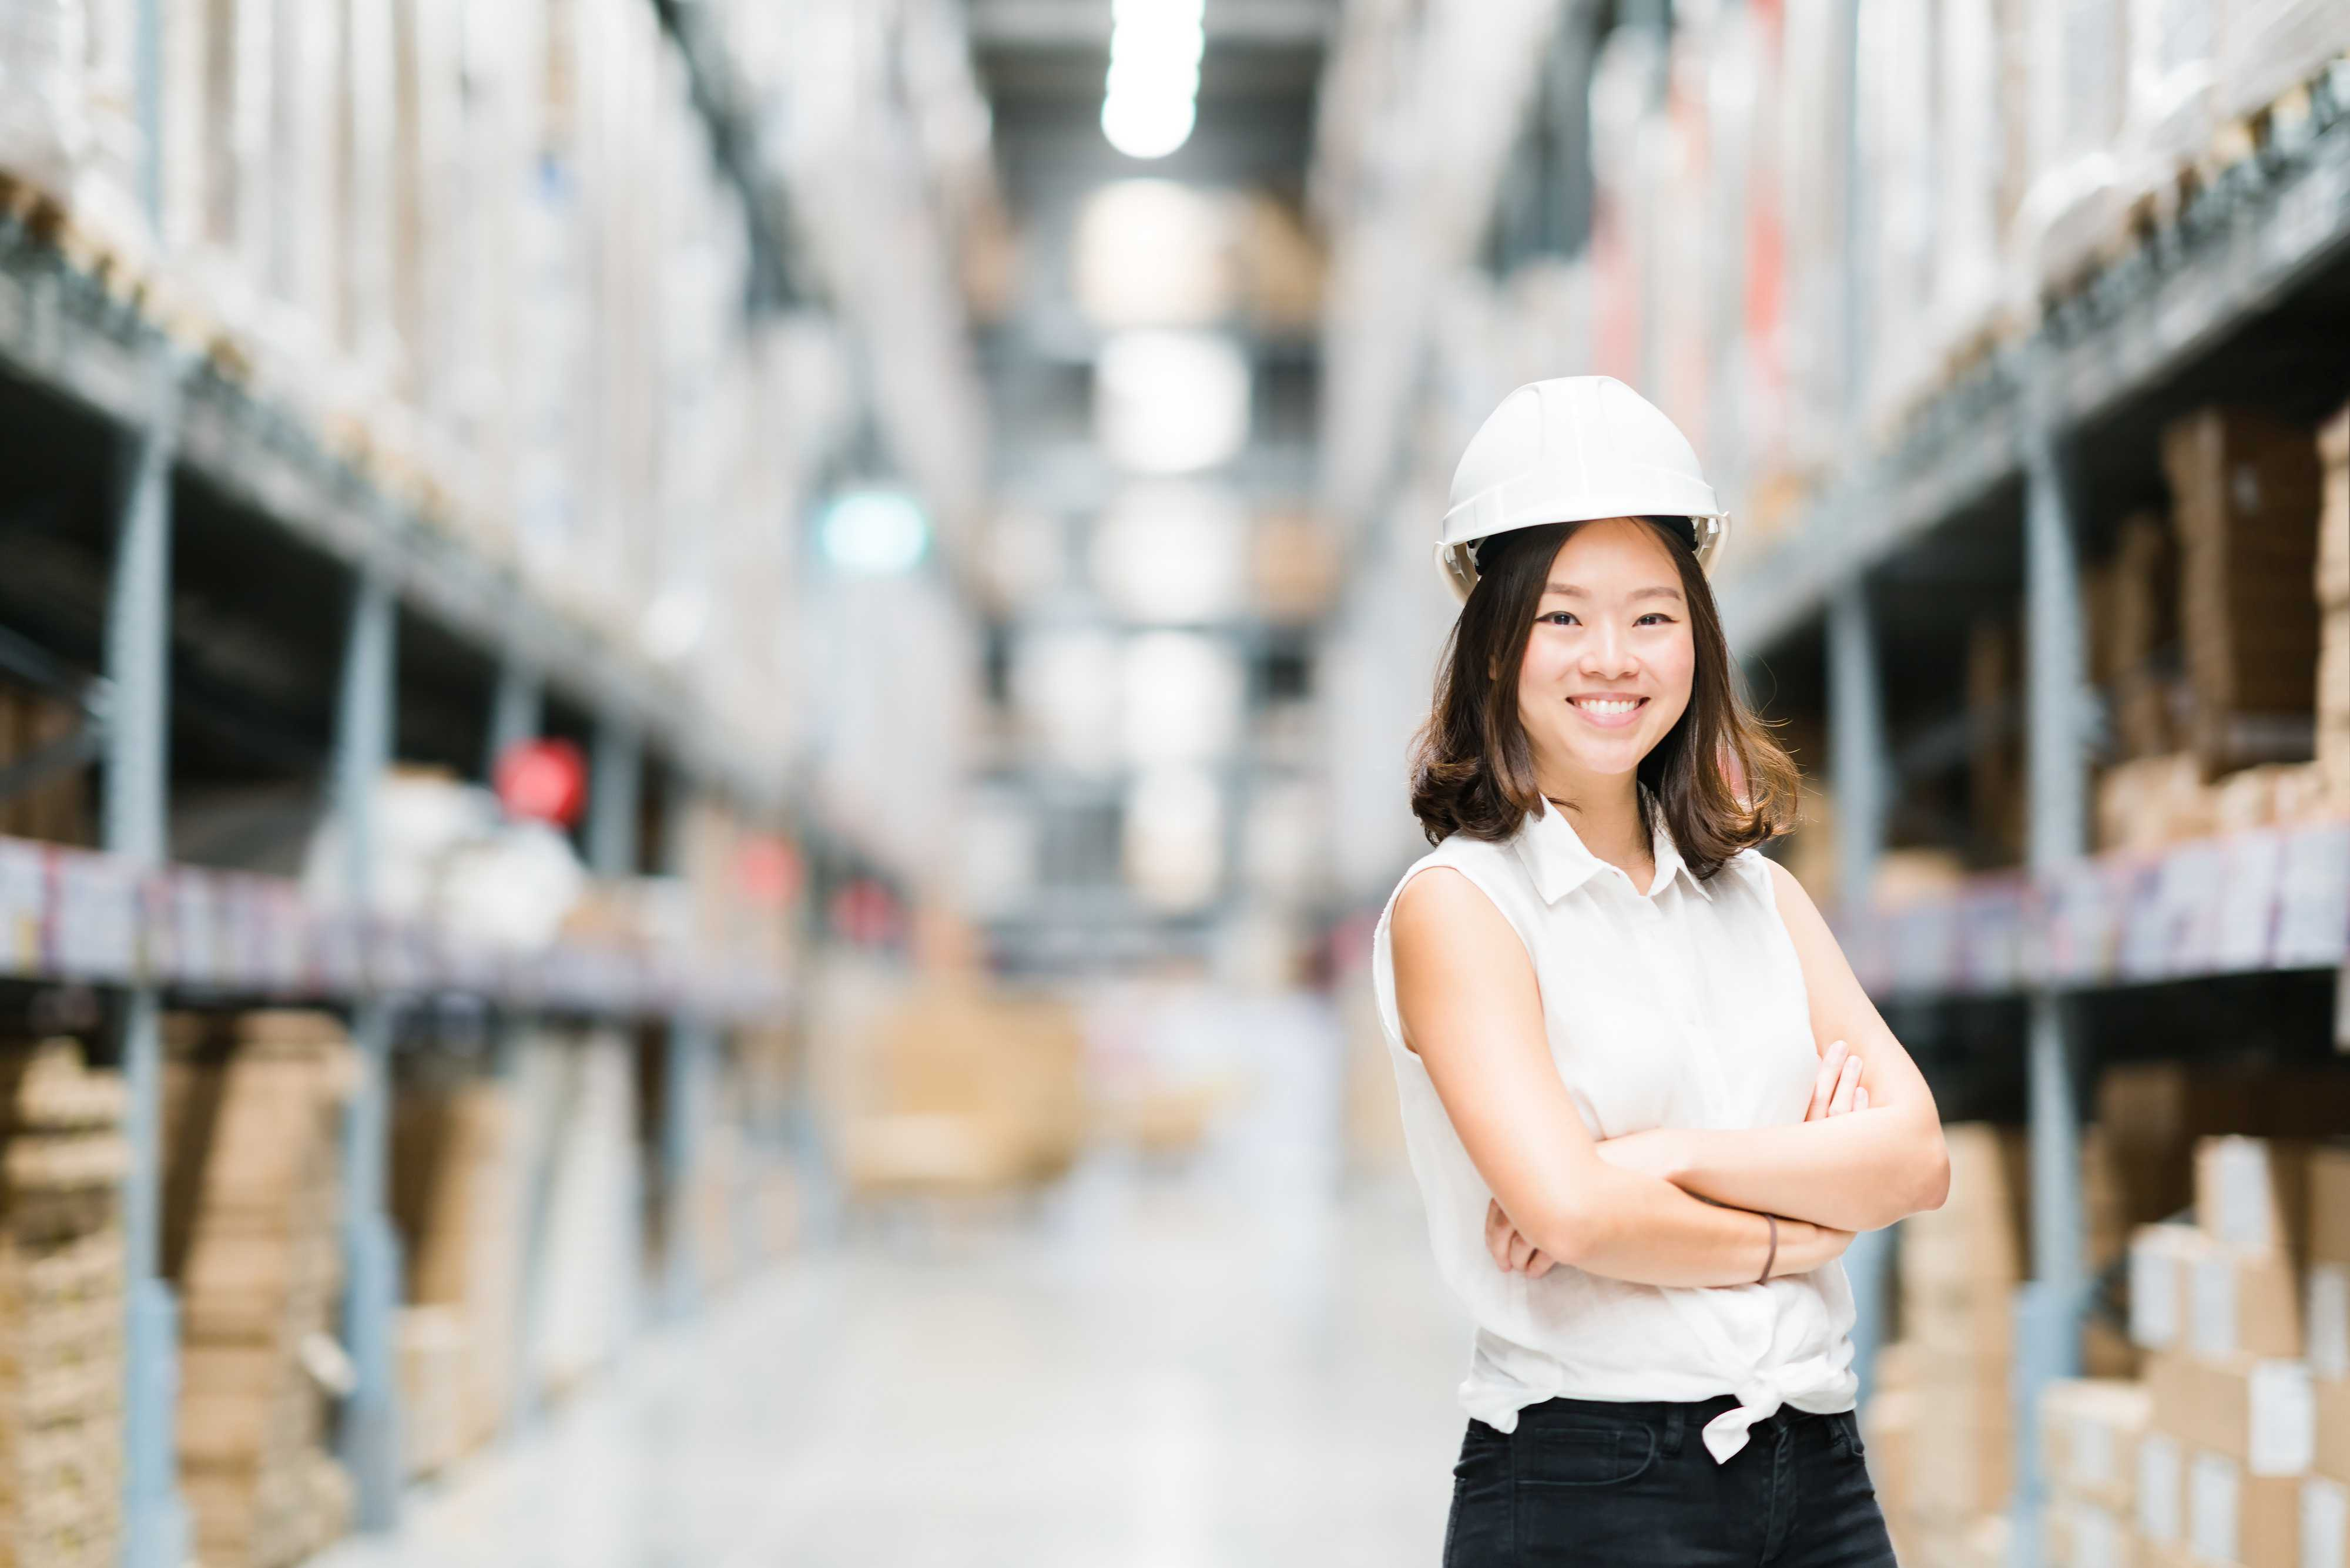 Become A Supply Chain And Logistics Manager In Less Than A Year